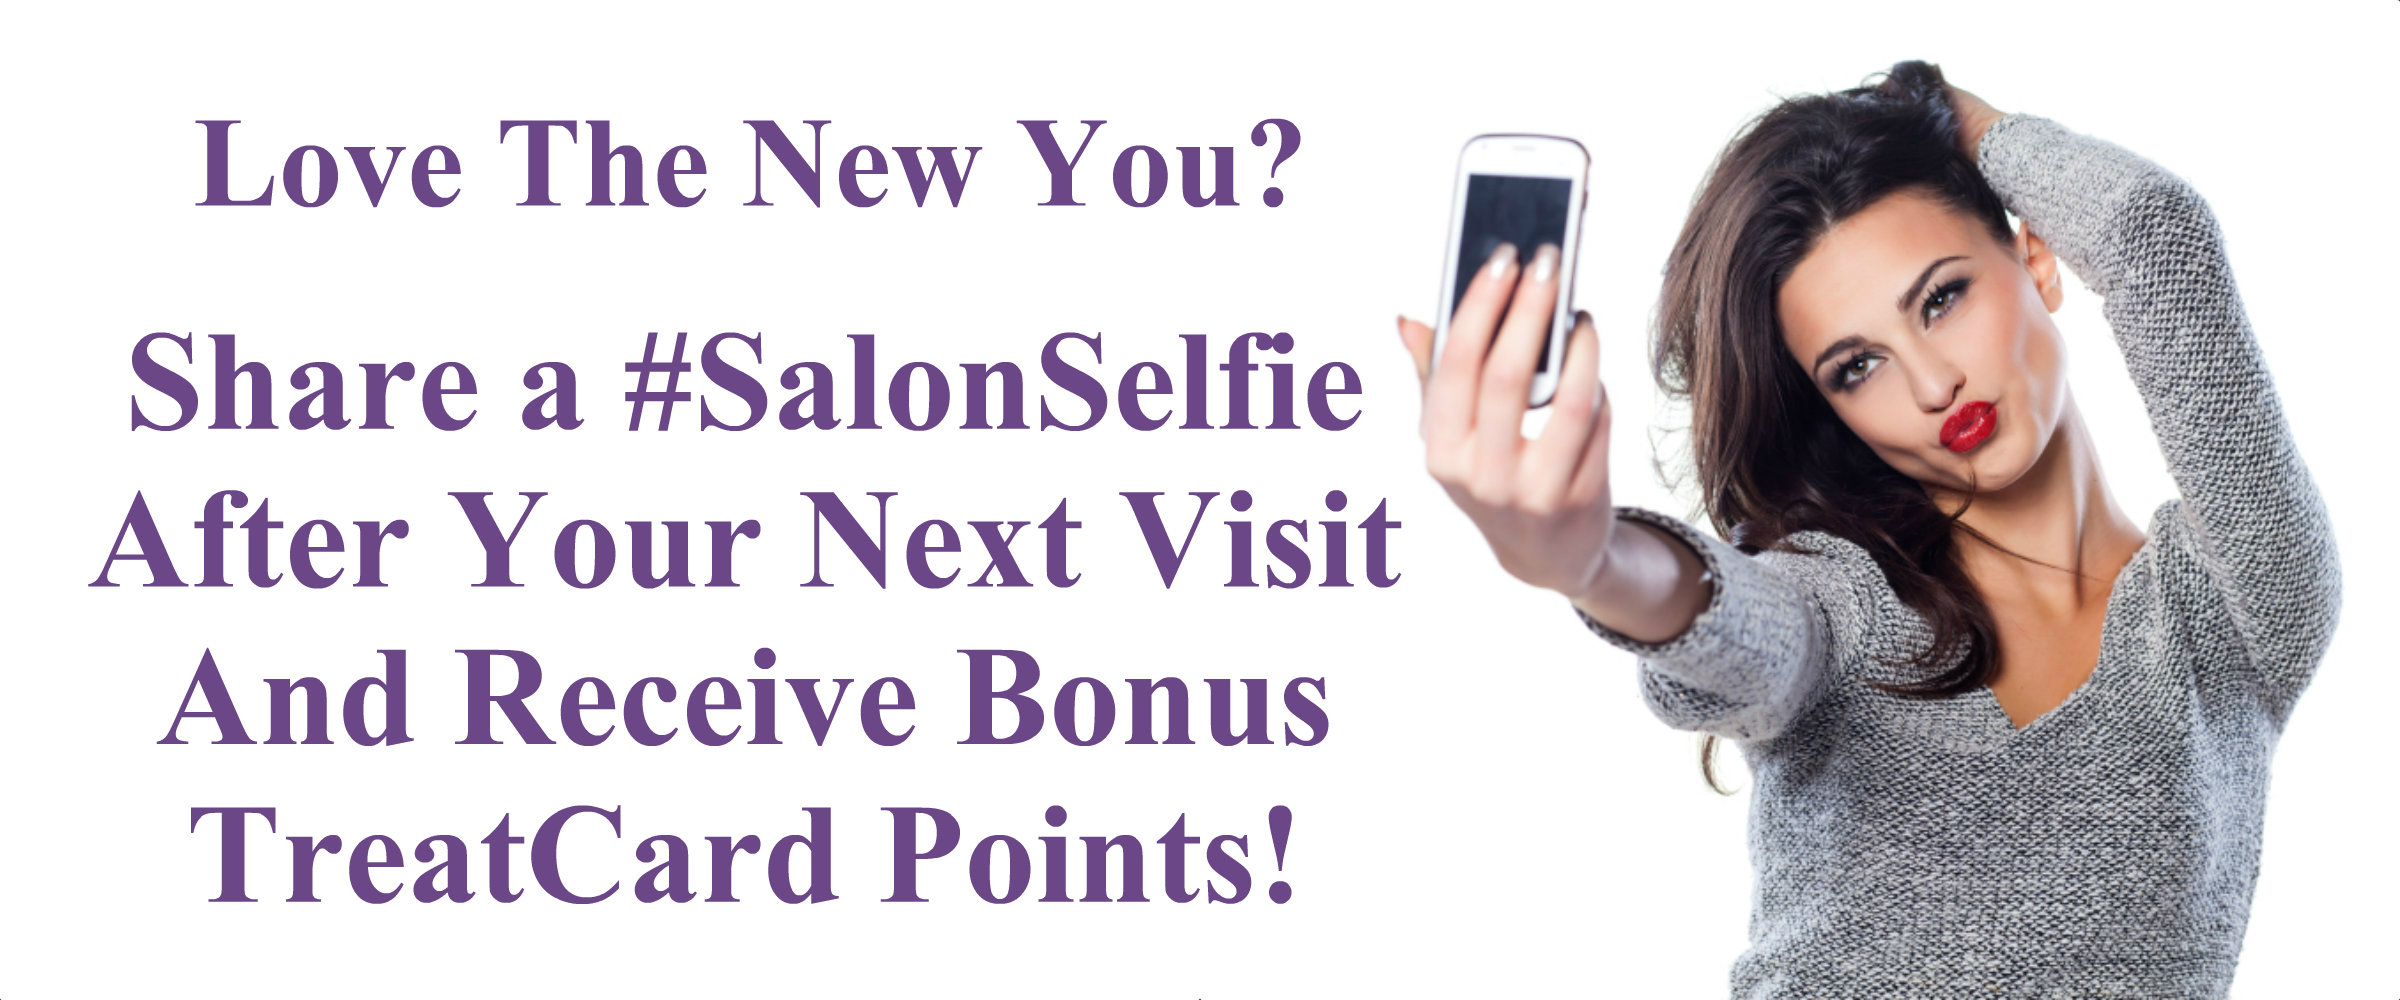 salonselfie-marketing